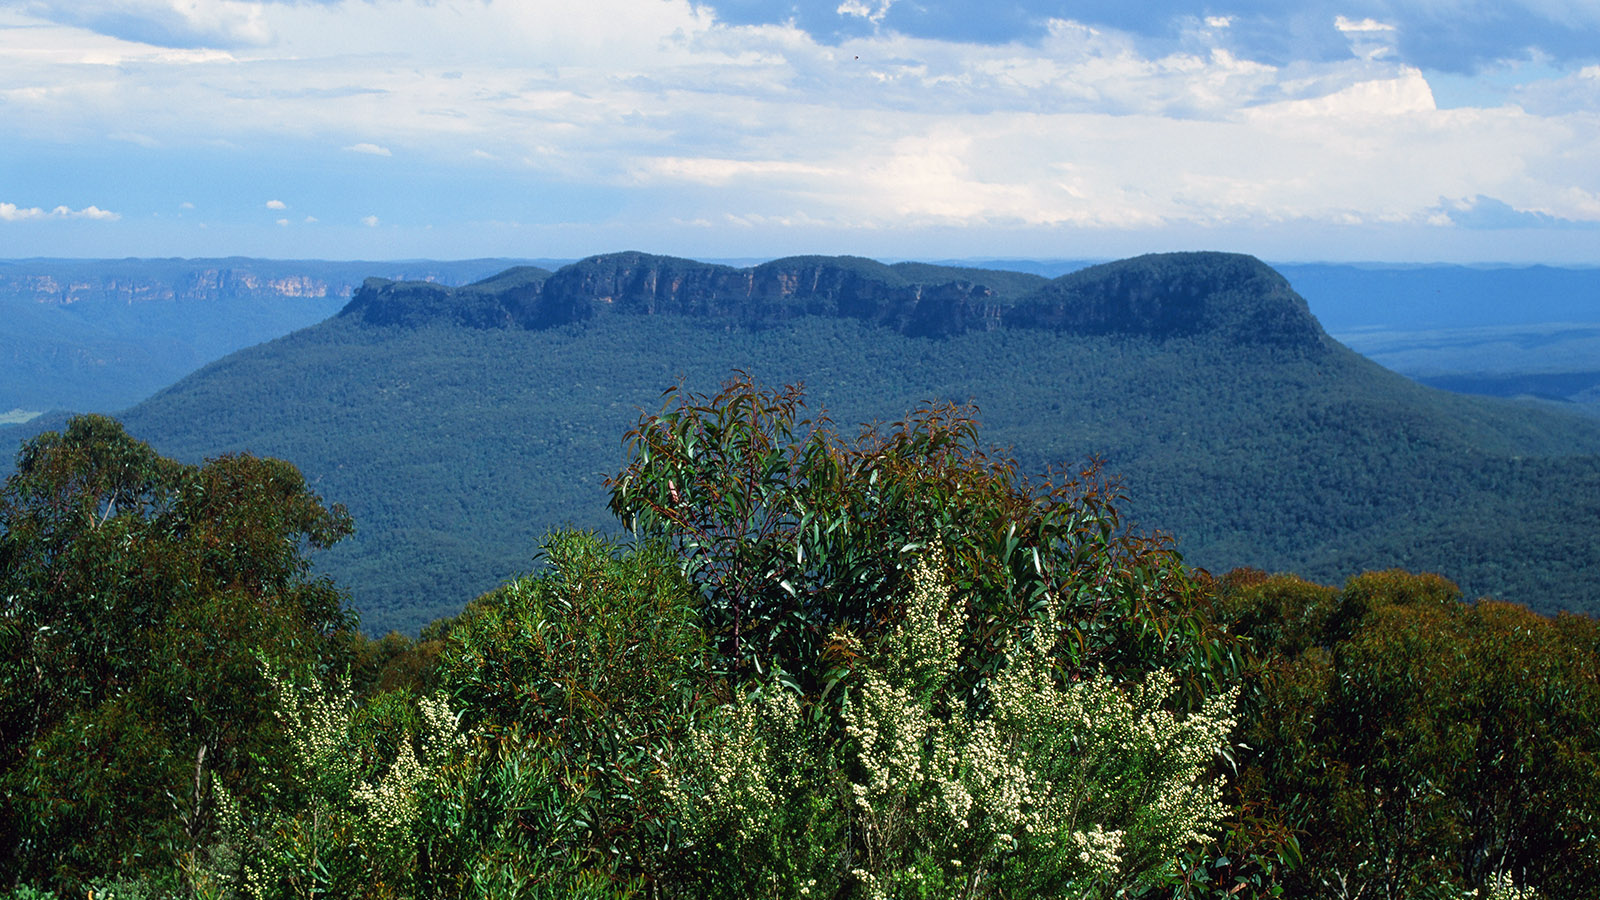 Das Jamison Valley in den Blue Mountains. Foto: Hilke Maunder